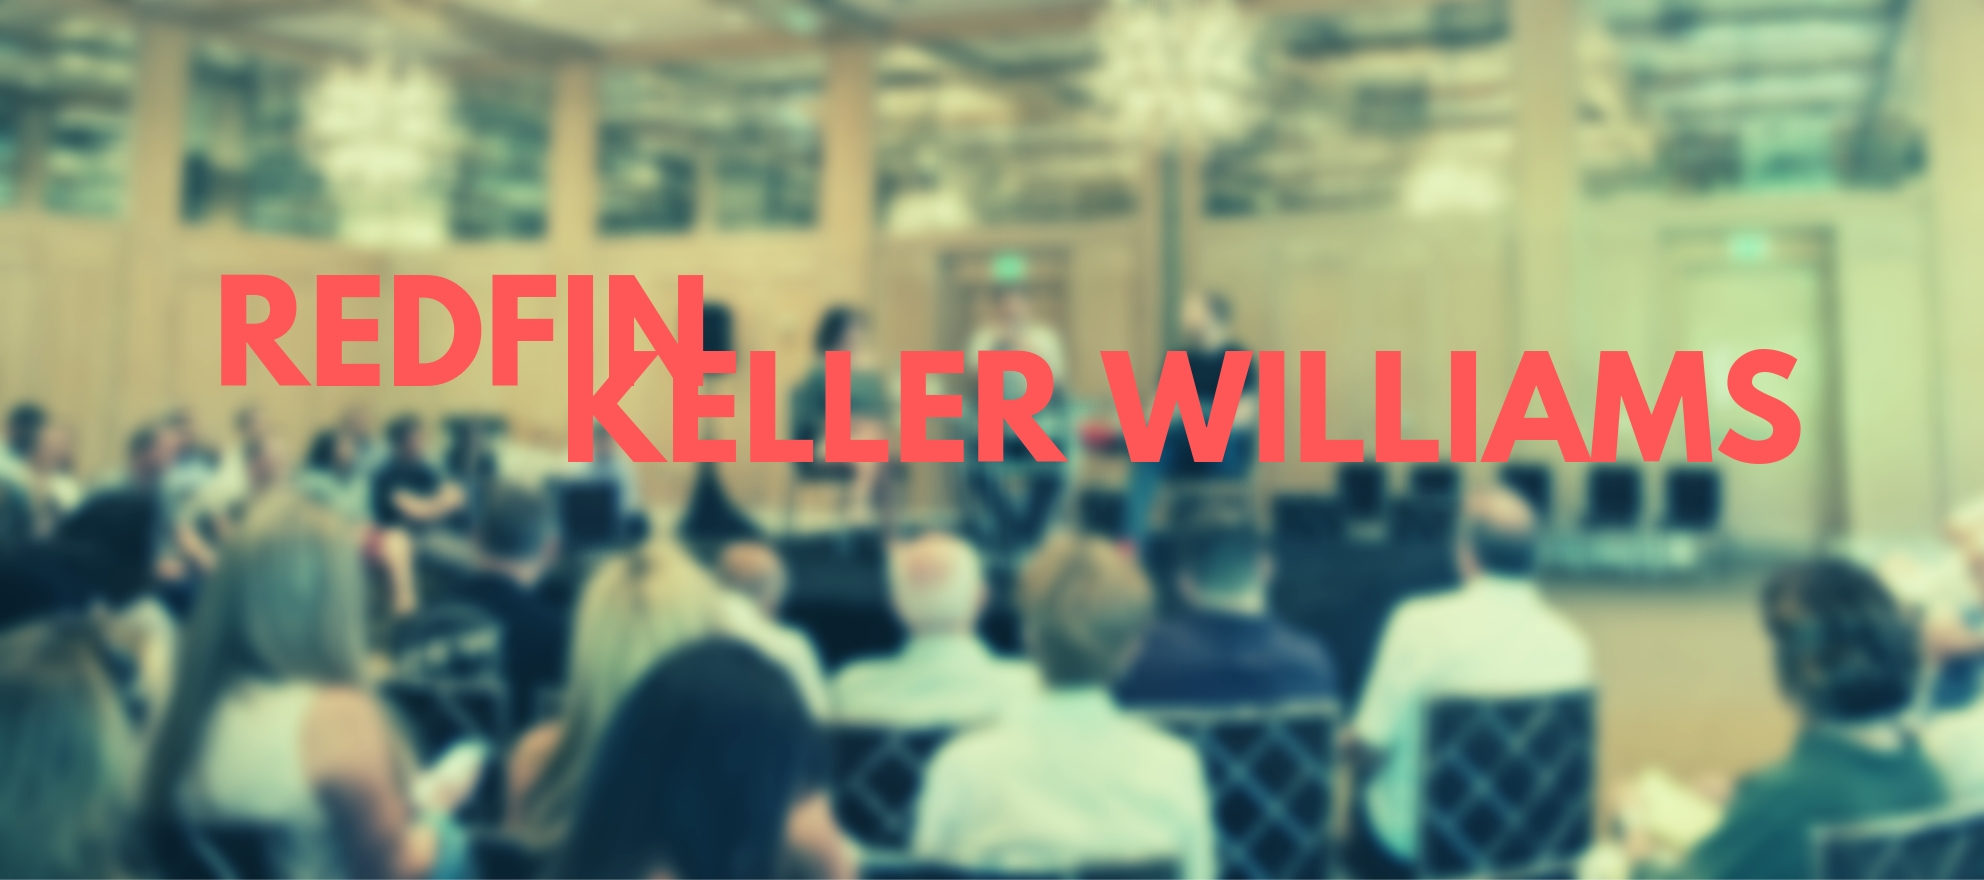 Keller Williams wants to copy Redfin's tech